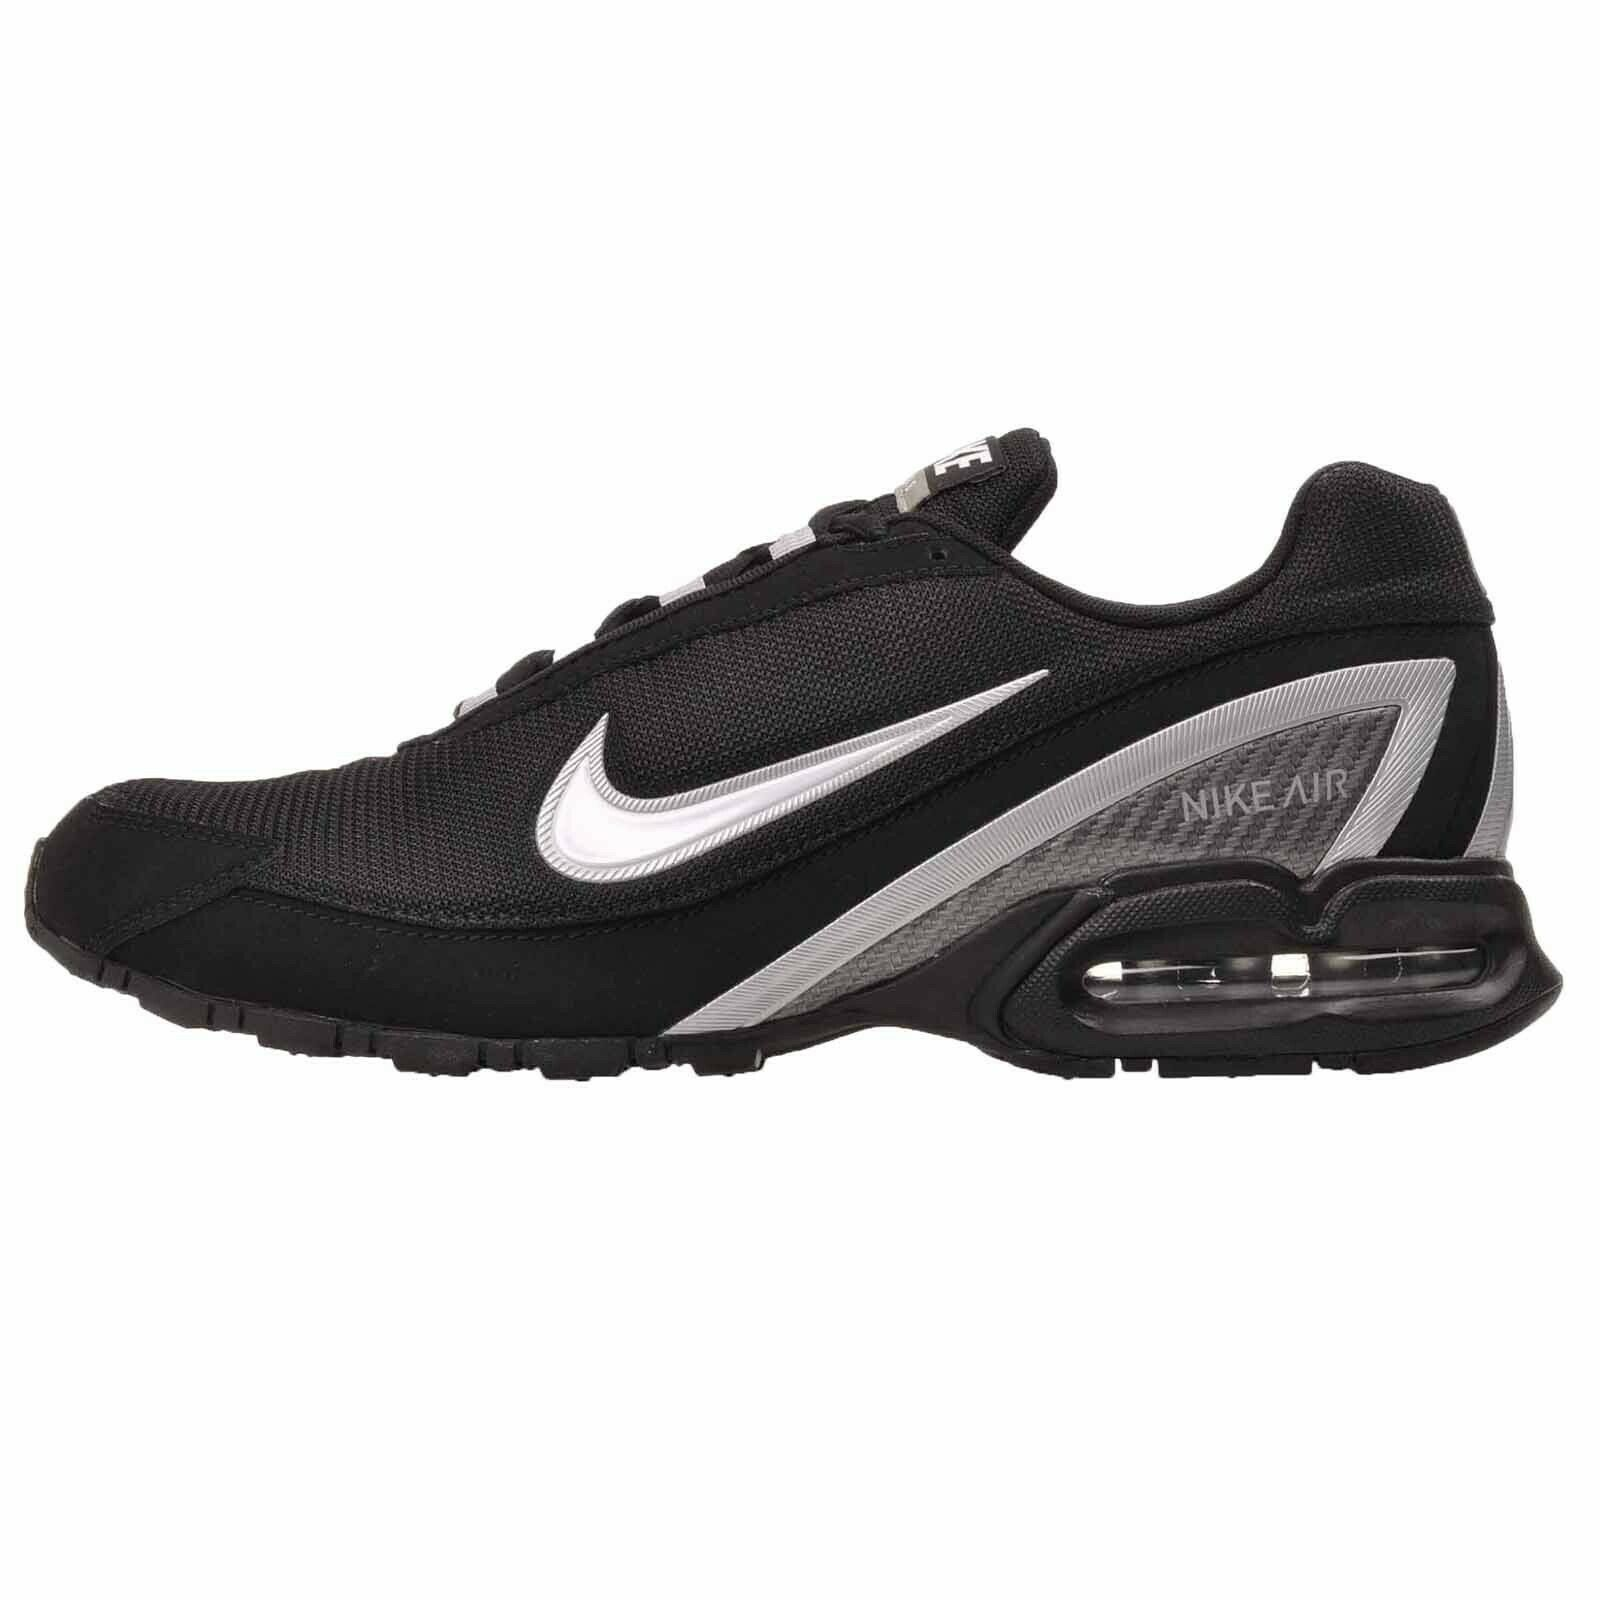 Nike Air Max Torch 3 Men's Running shoes (9.5 D US) Black White